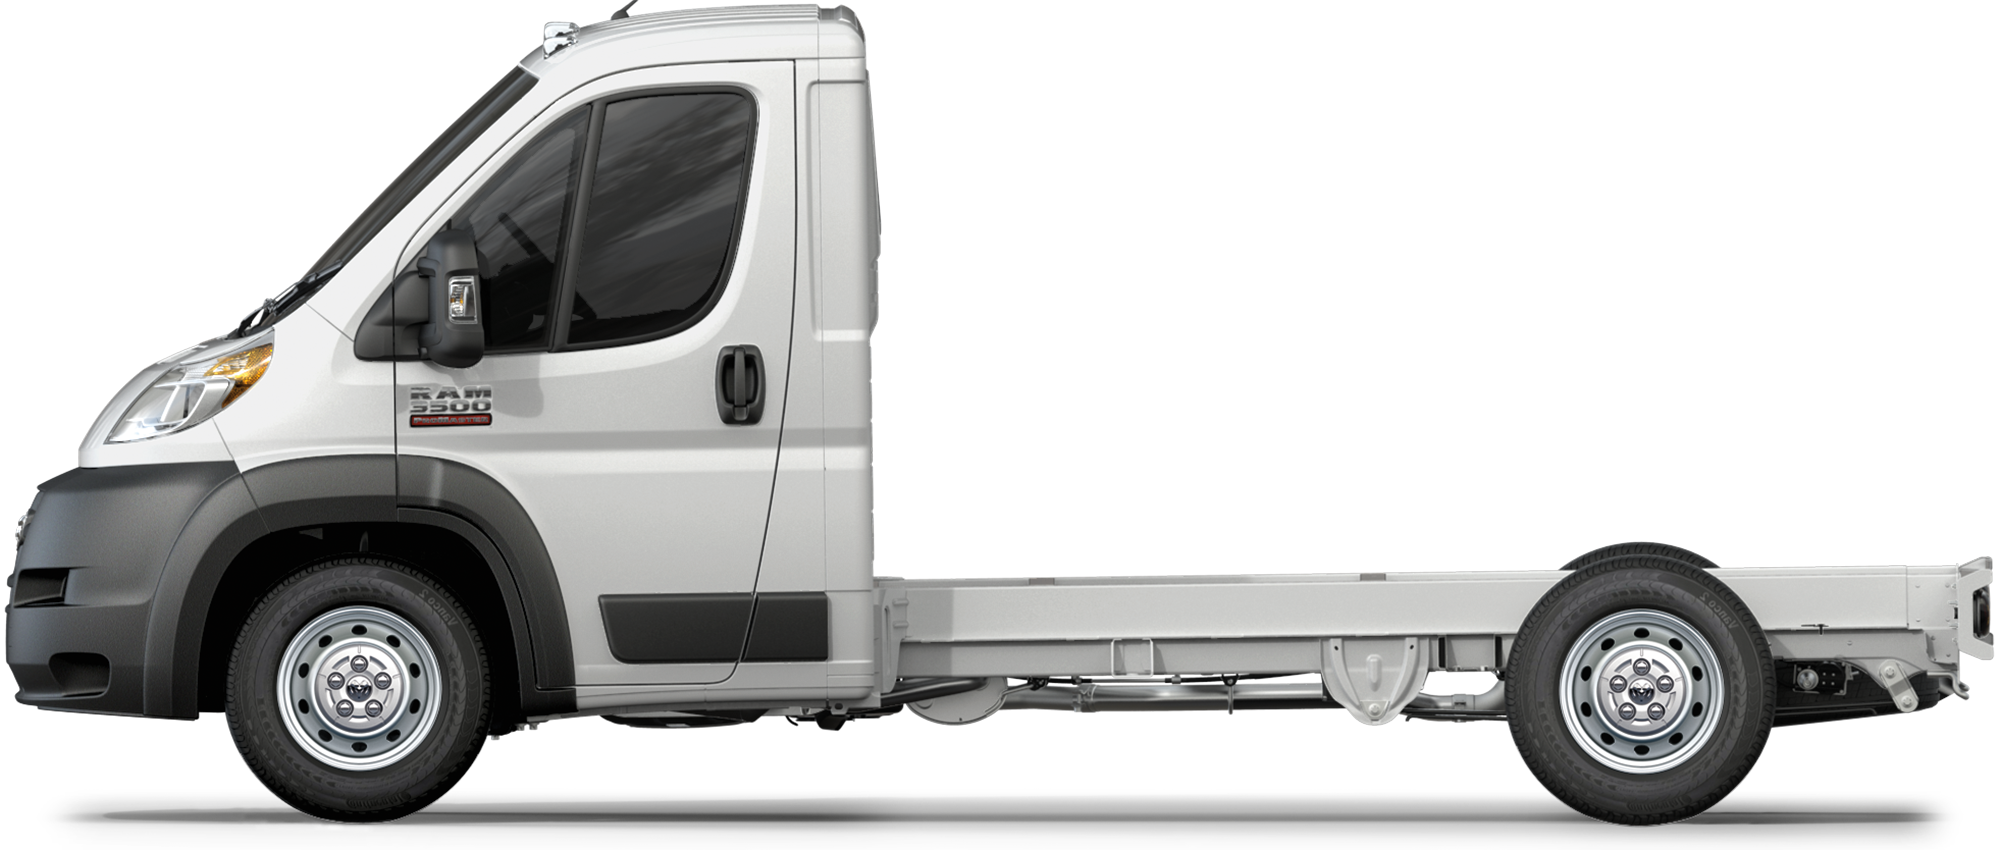 2019 Ram ProMaster 3500 Cab Chassis Truck Low Roof